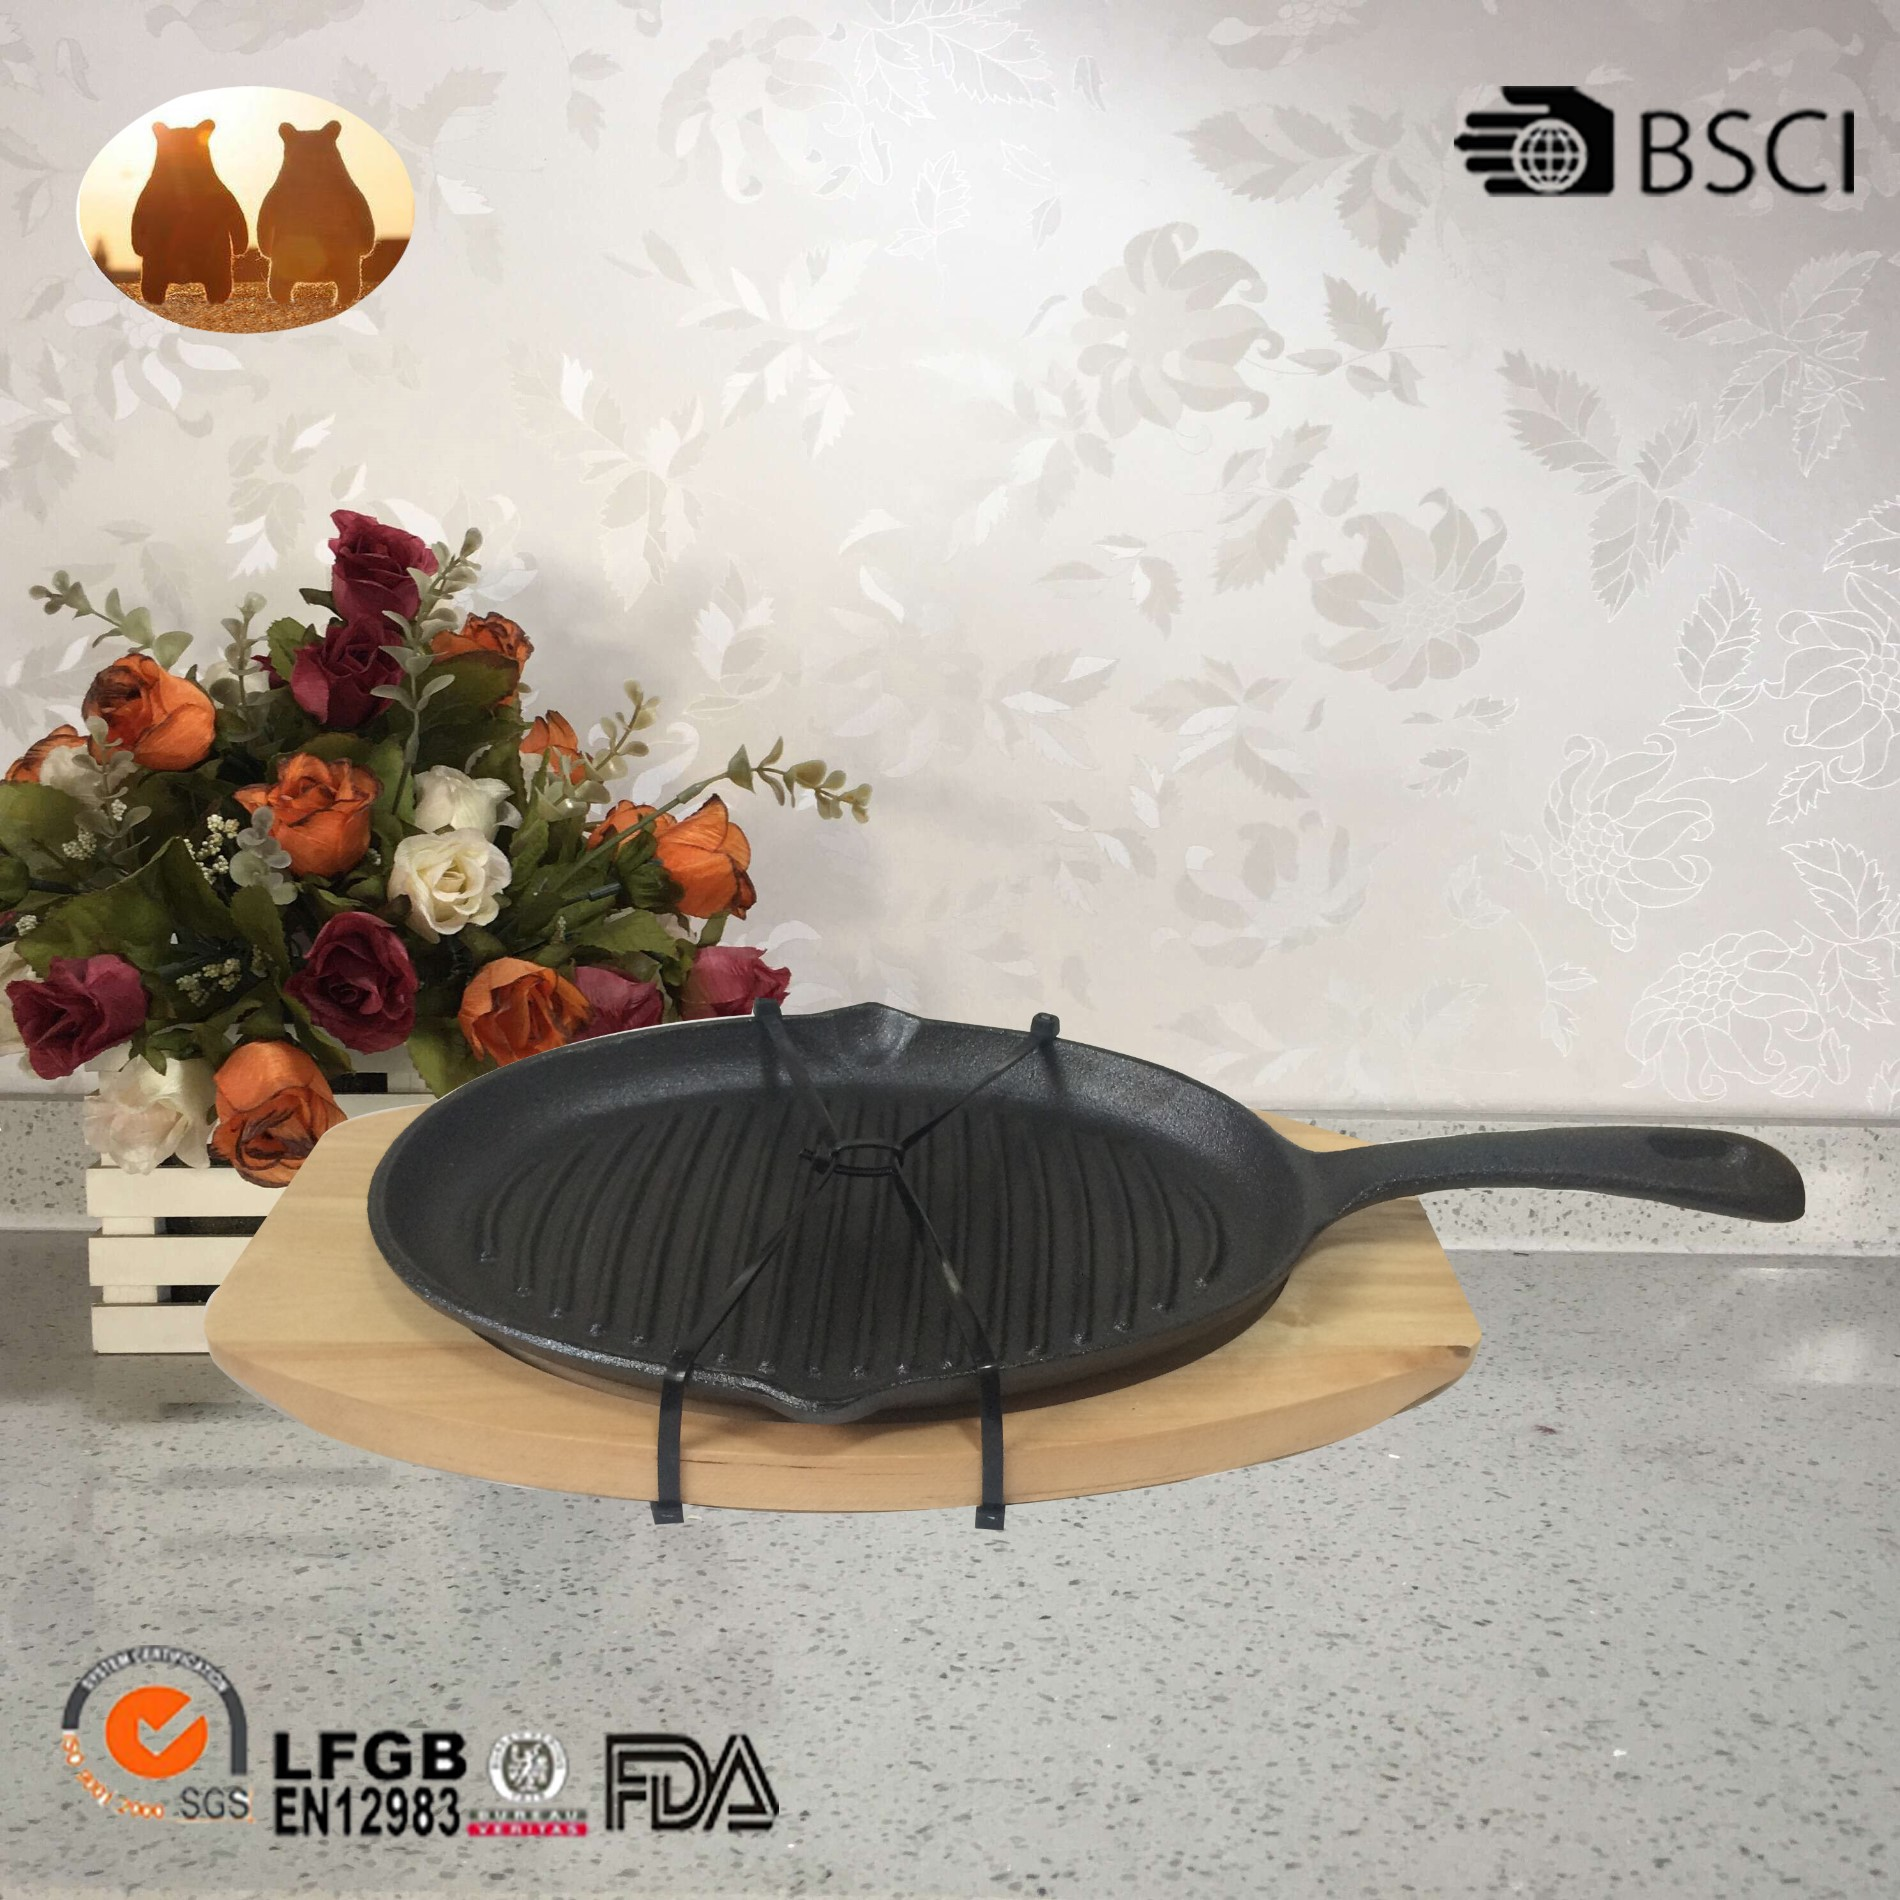 Cast Iron Pan With Wooden Tray Manufacturers, Cast Iron Pan With Wooden Tray Factory, Supply Cast Iron Pan With Wooden Tray